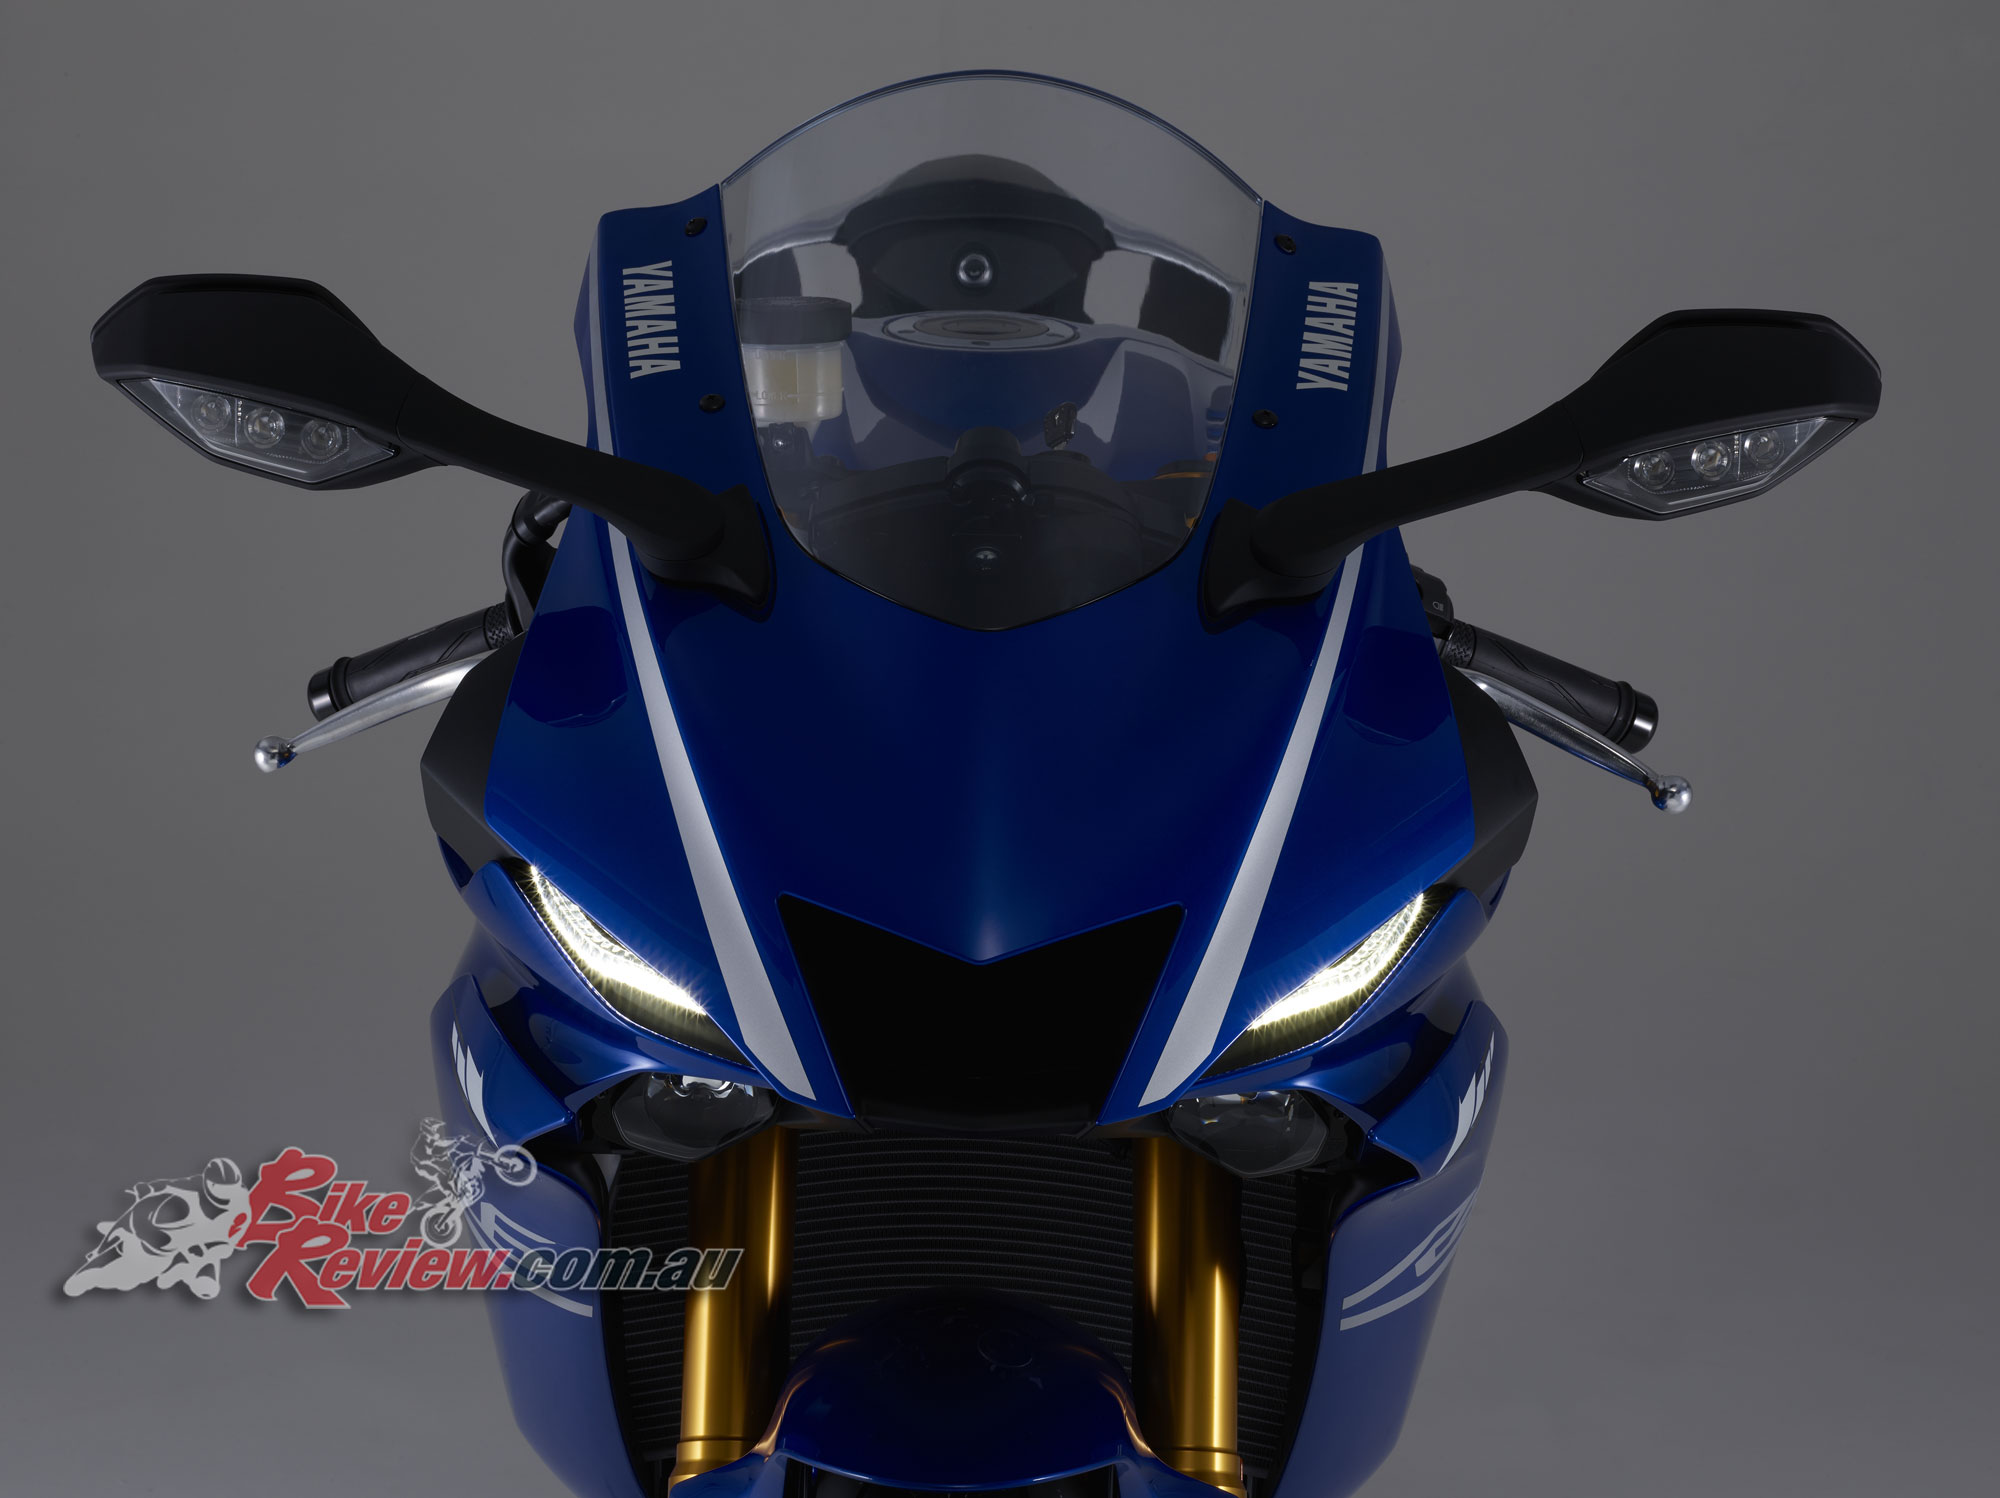 2017 Yamaha YZF R6 Restyled Nose Fairing